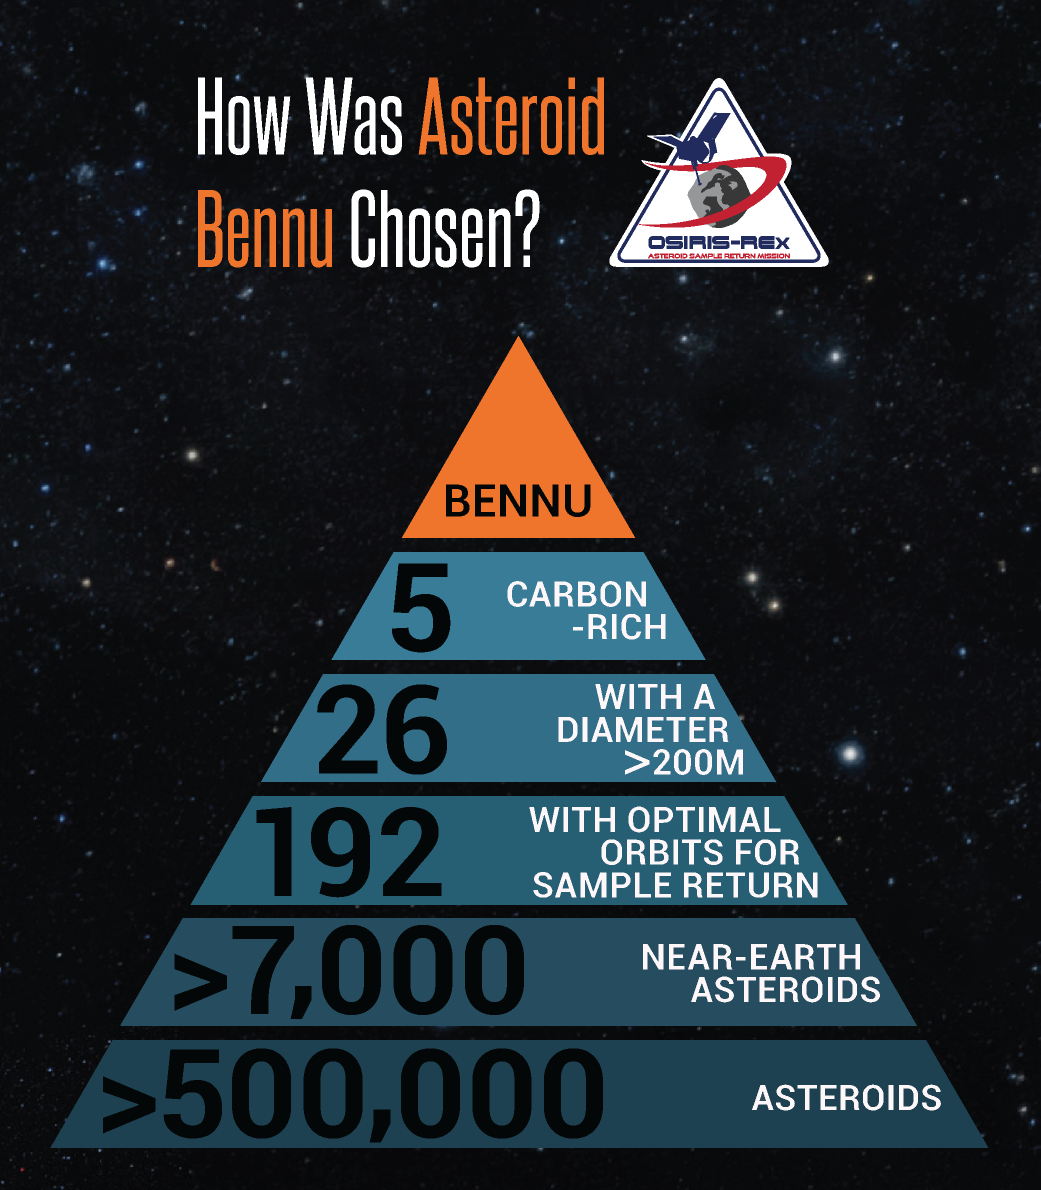 How was Bennu chosen?